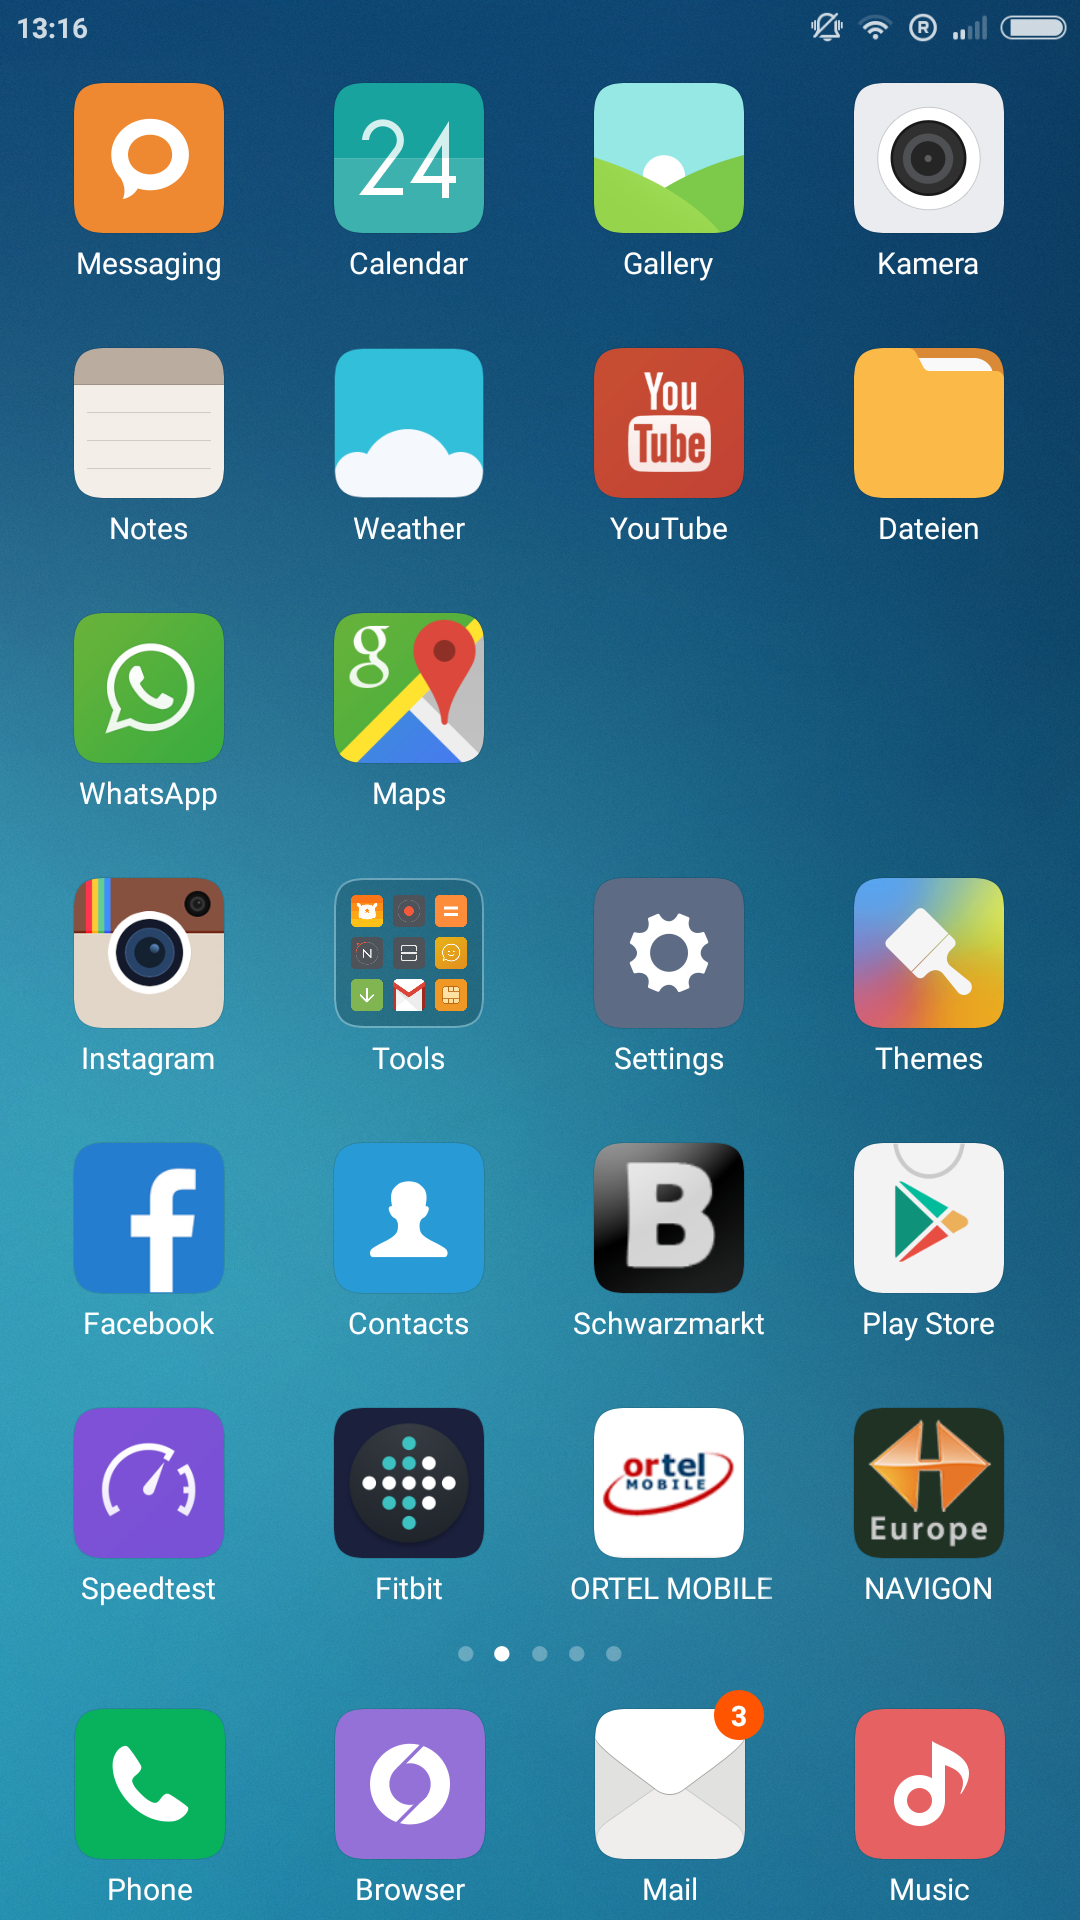 Screenshot_com.miui.home_2015-09-24-13-16-44.png